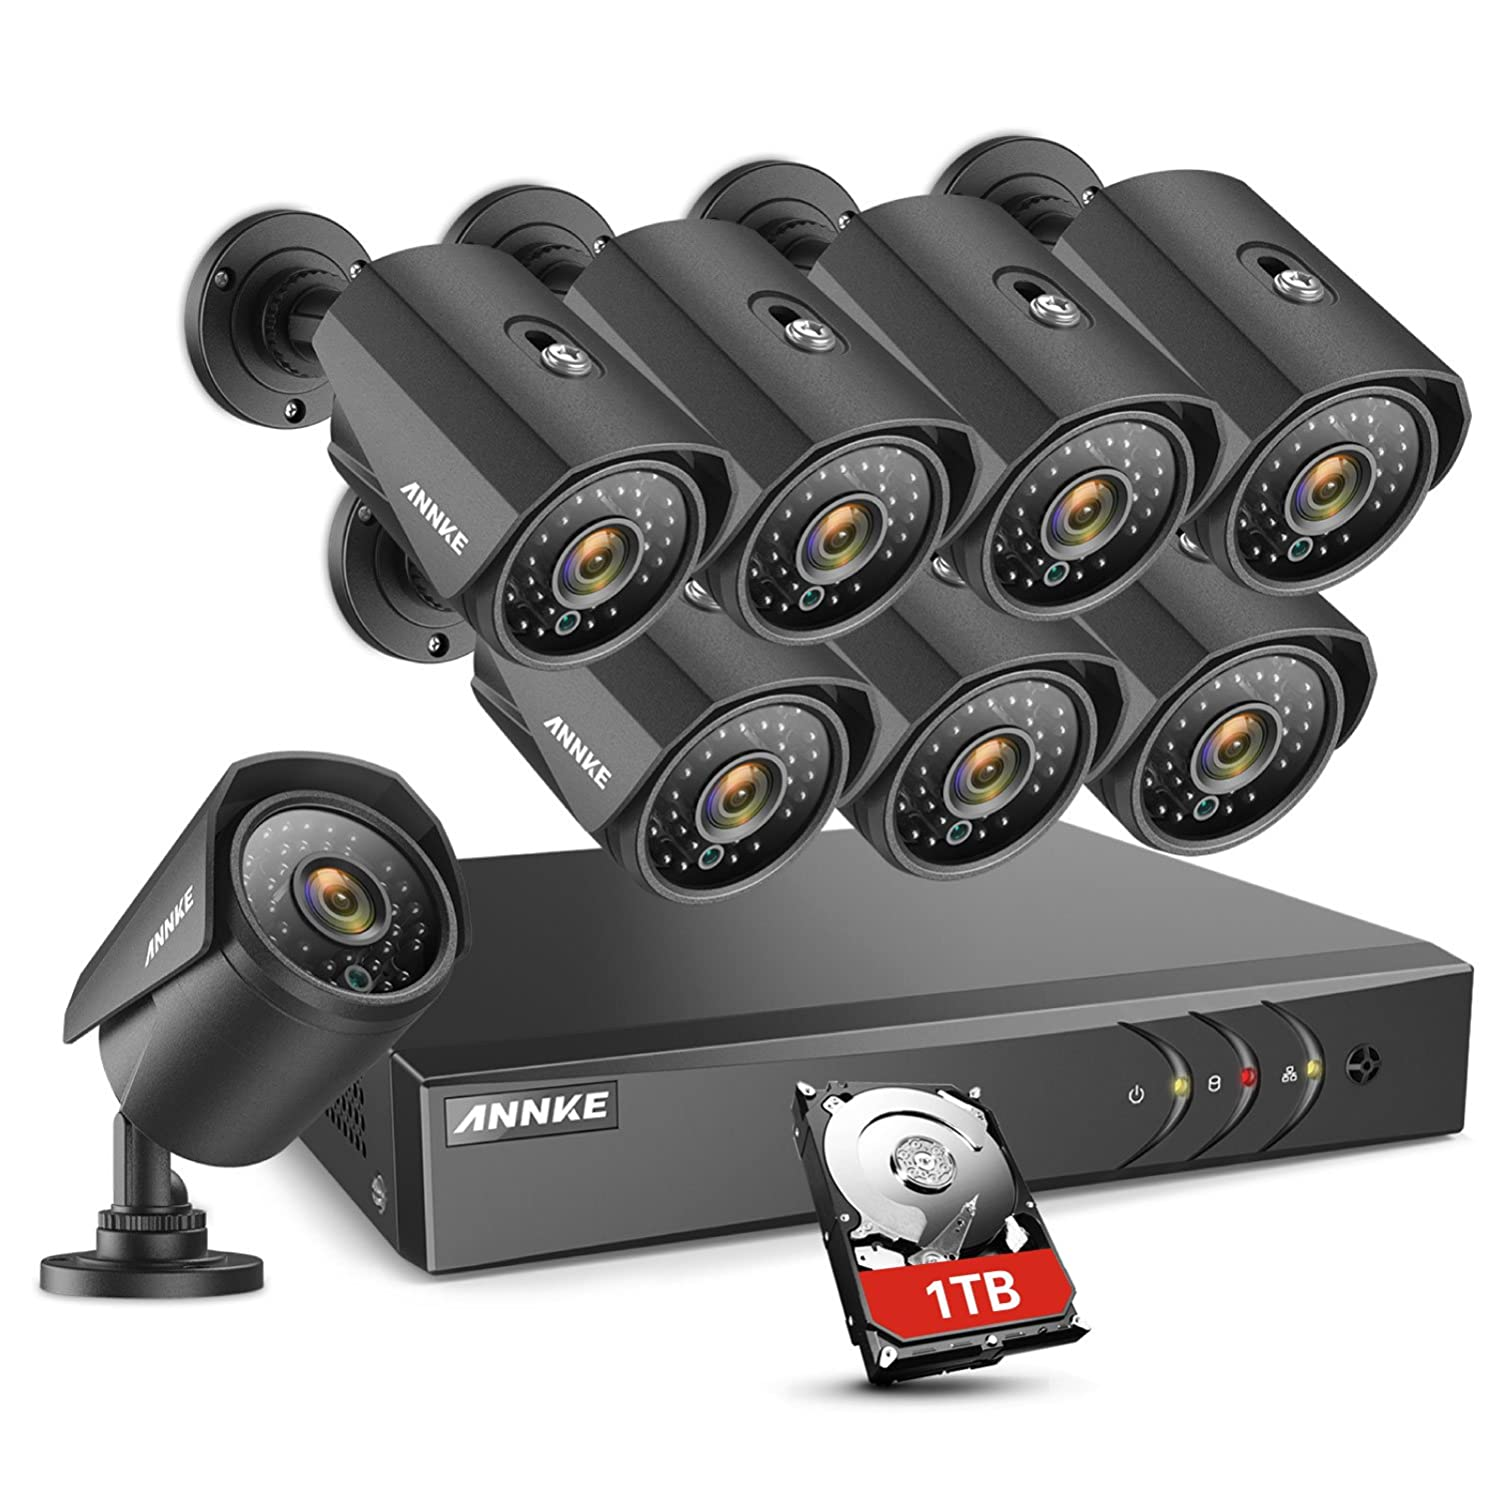 ANNKE 8CH Security CCTV Surveillance System 1080P Lite DVR 1TB HDD (8) Weatherproof Camera 100ft Night Vision, Enable H.264+ to Record Longer